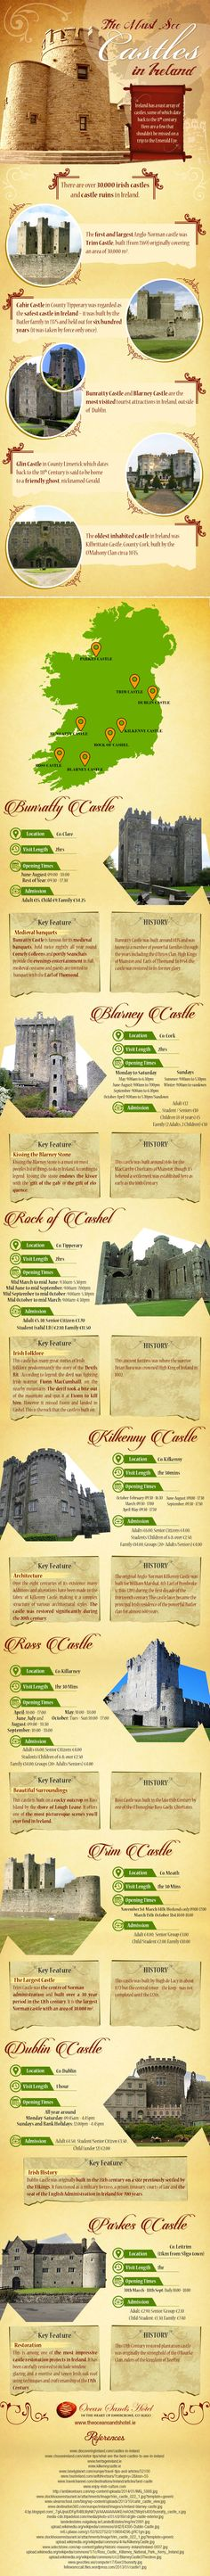 Most popular castles in Ireland                                                                                                                                                     More